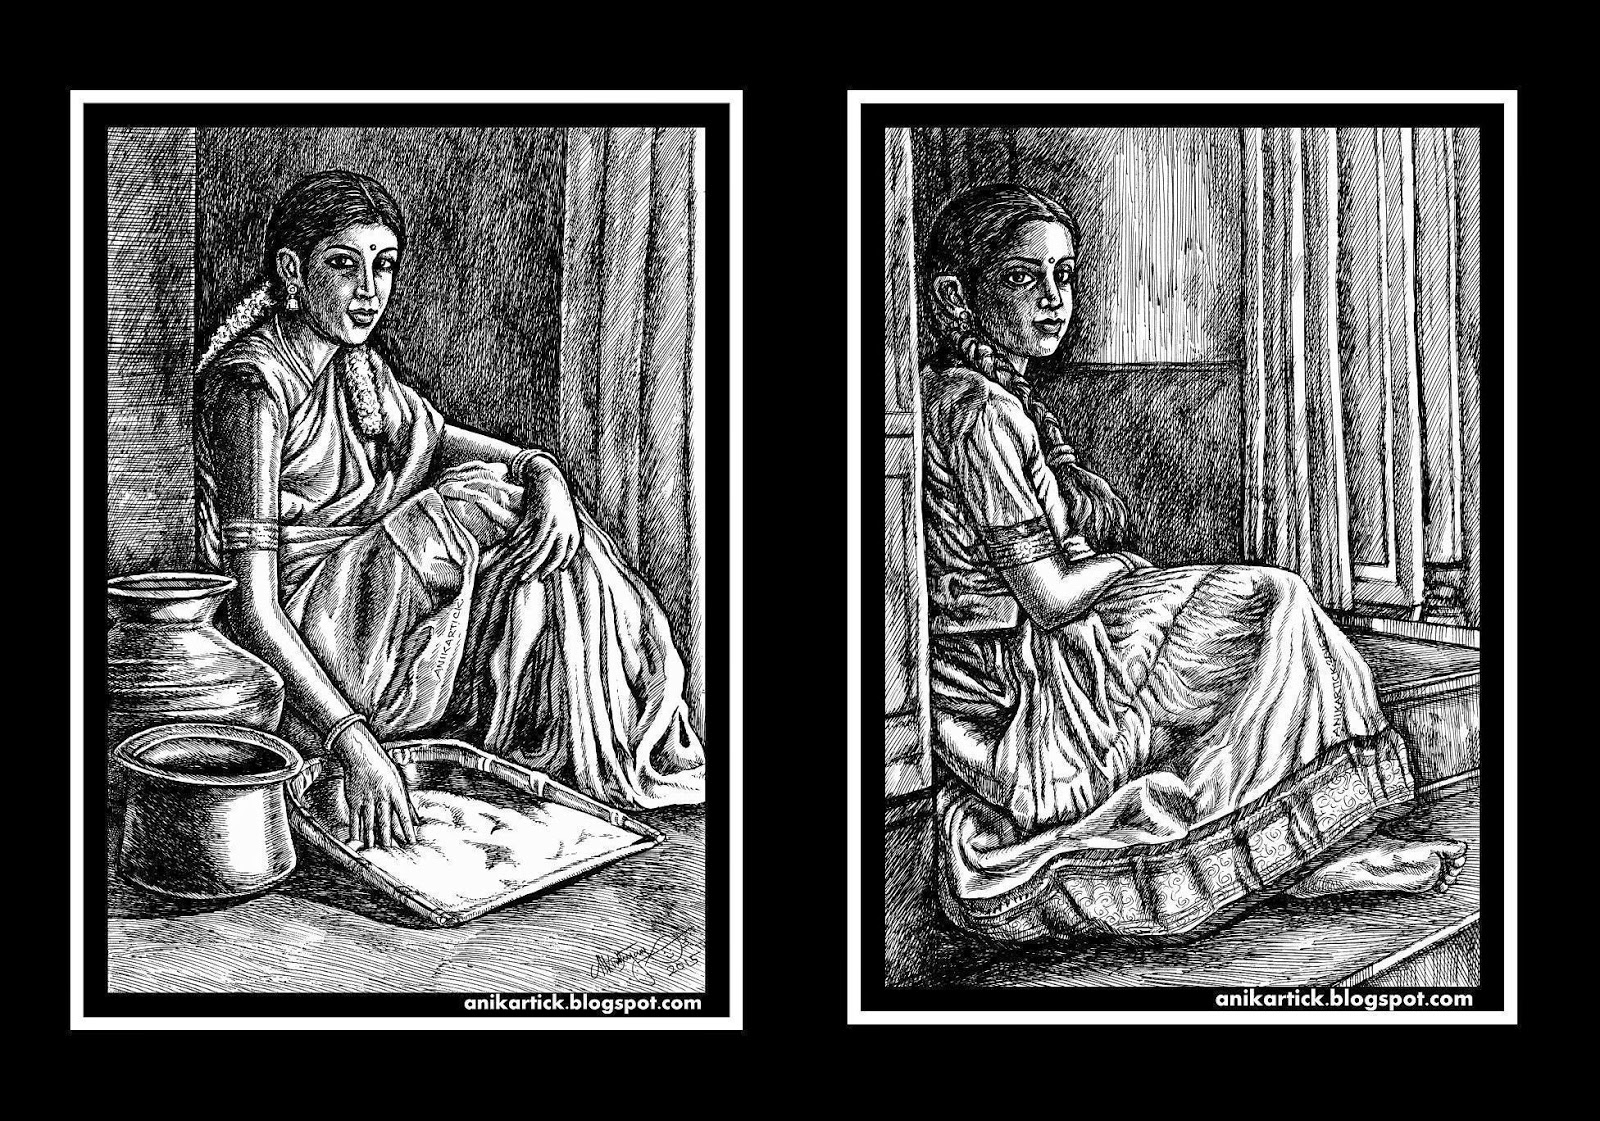 ... PENGAL OVIYAM / - Pen drawings done by Artist Anikartick,Chennai,Tamil